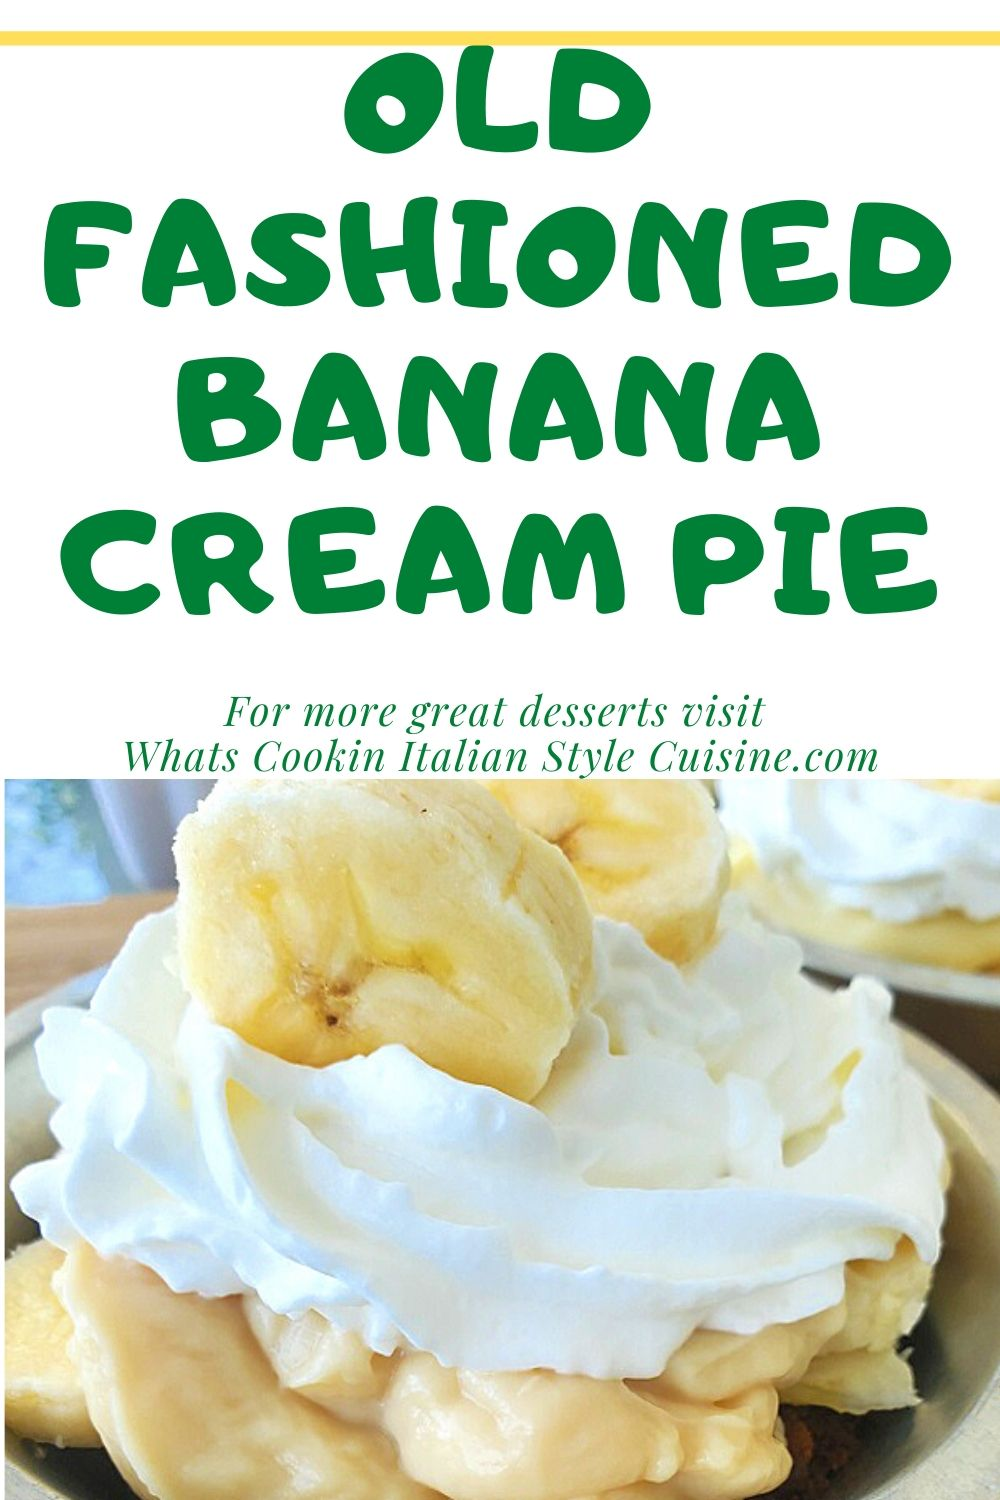 this is a pin for a recipe on how to make homemade old fashioned banana cream pie